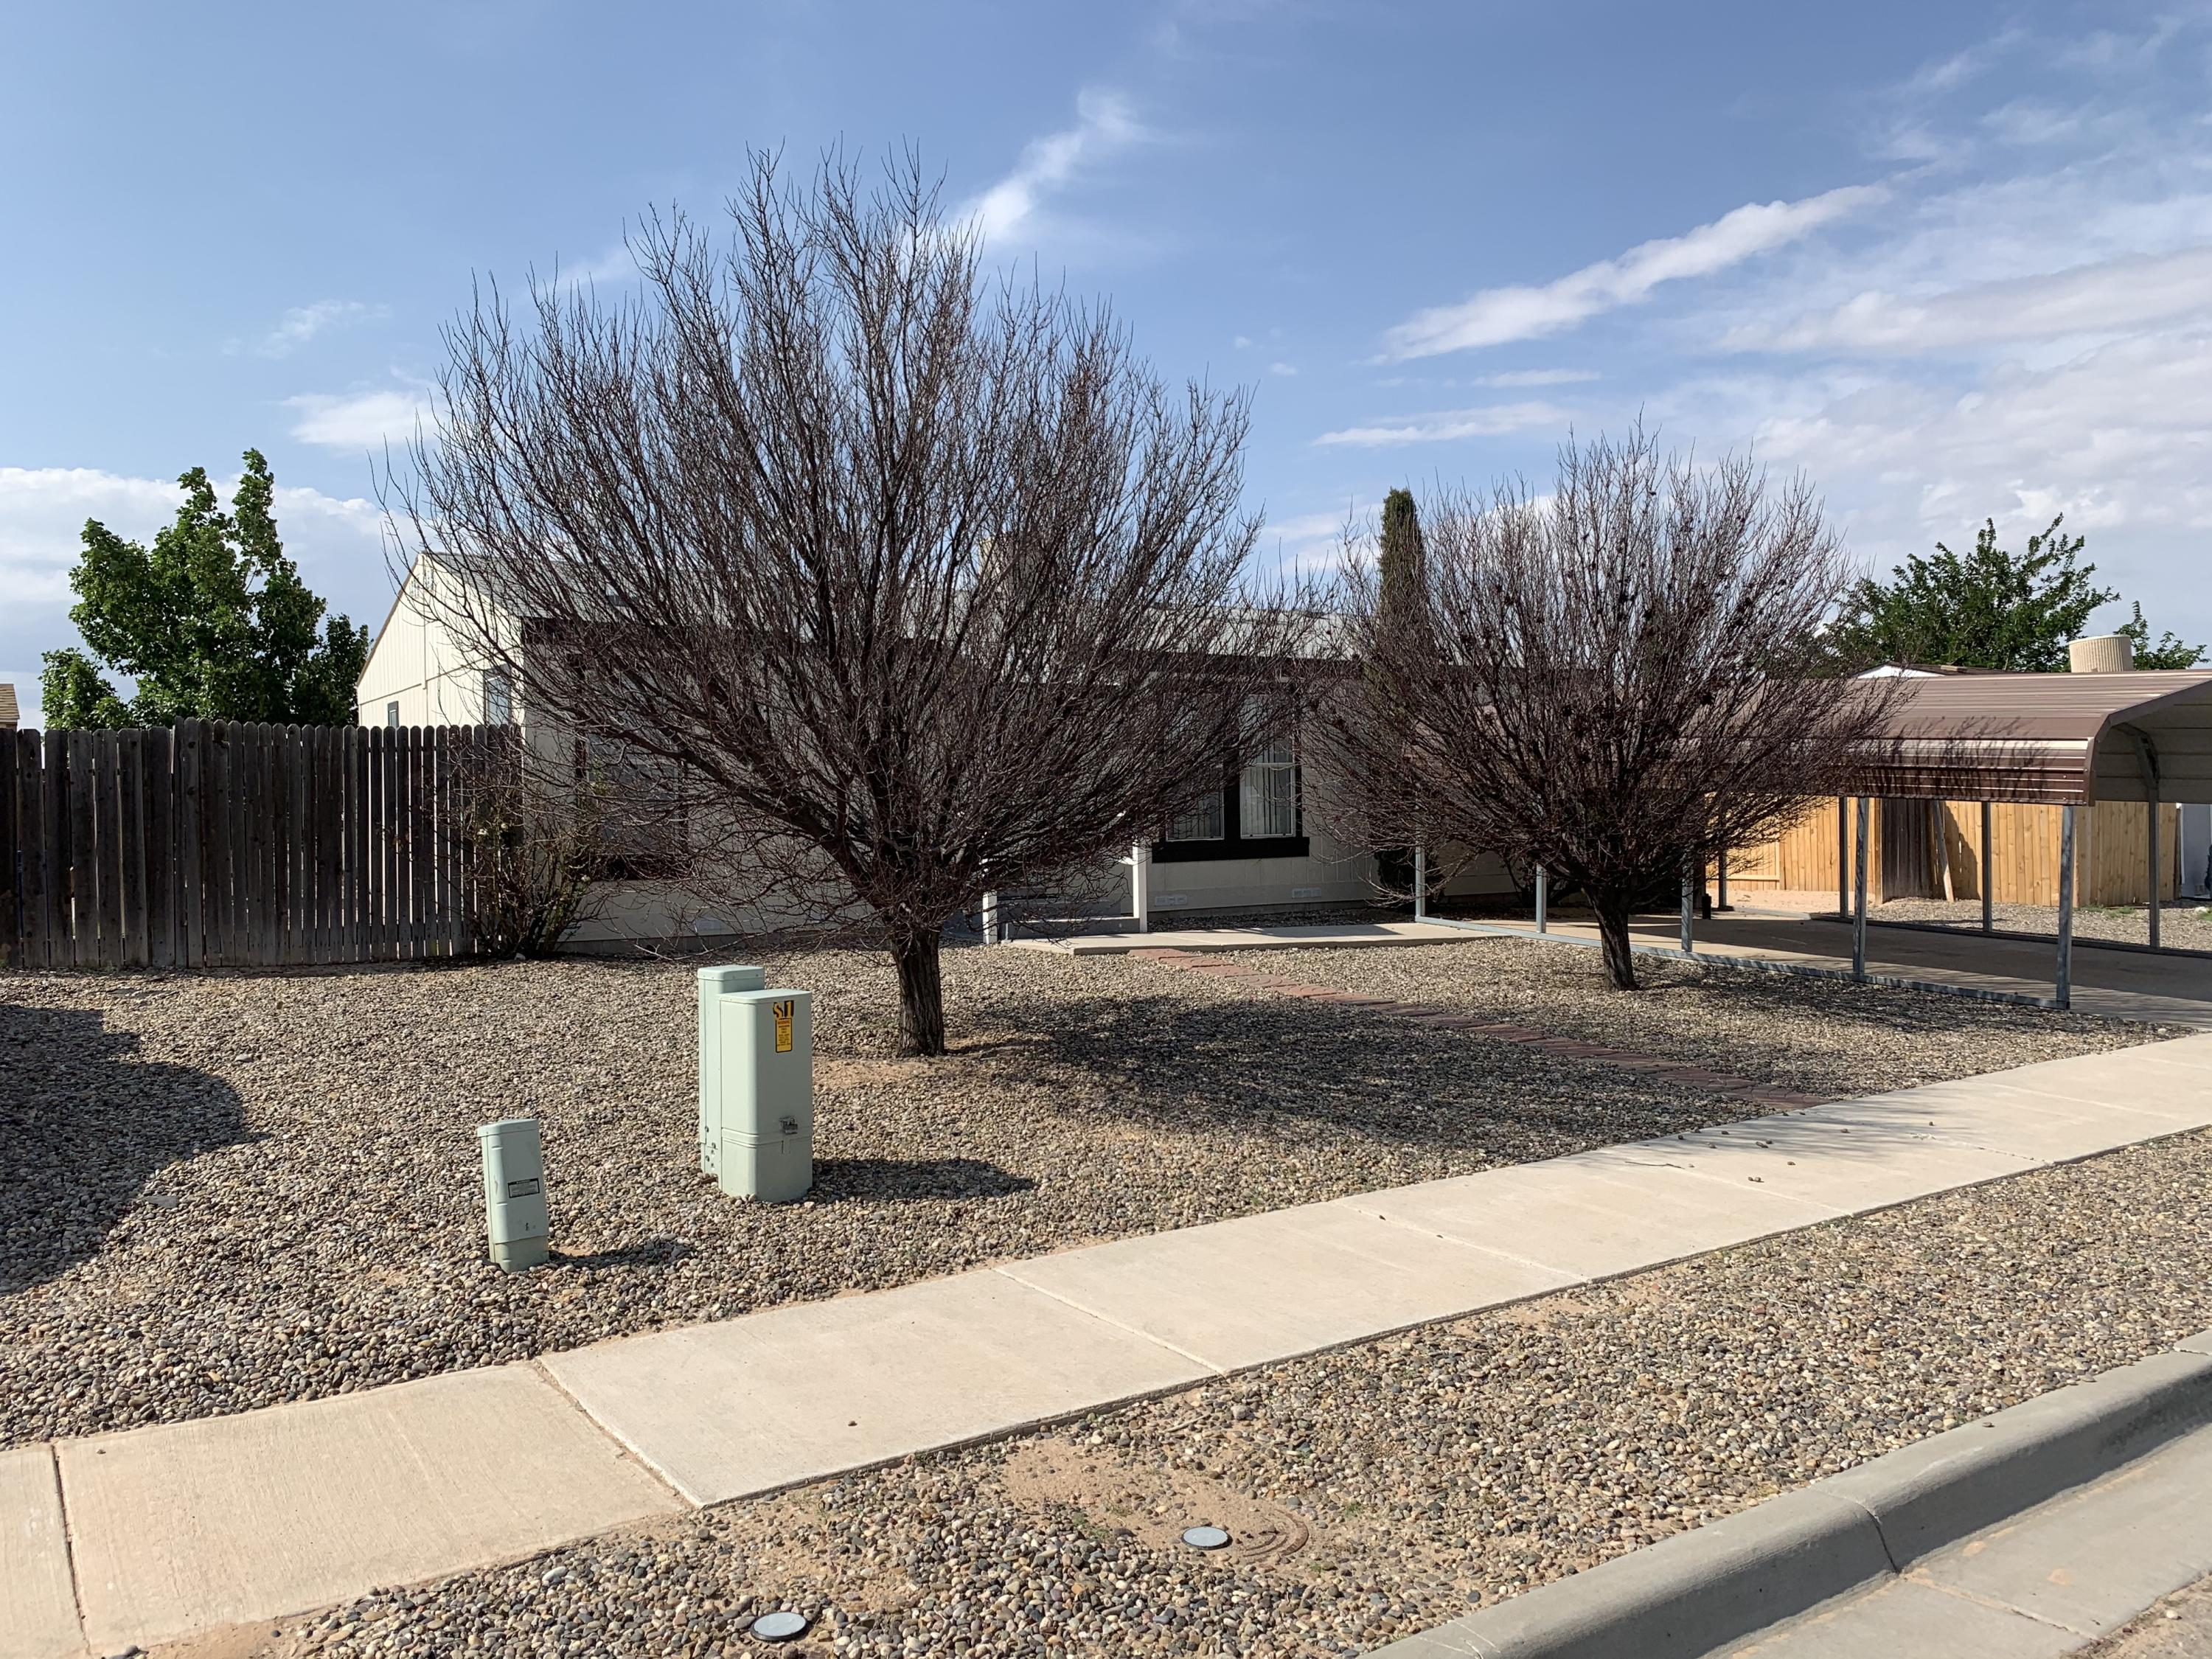 3 bedroom affordable home, super convent to get on Interstate 25, just 4 minutes away.  Home is cleaned, carpets shampooed and ready to move in.  Bright with lots of windows for natural light.  Large back yard, accessible for your extra parking needs.  Gravel and carport in front.  Make an appointment today.